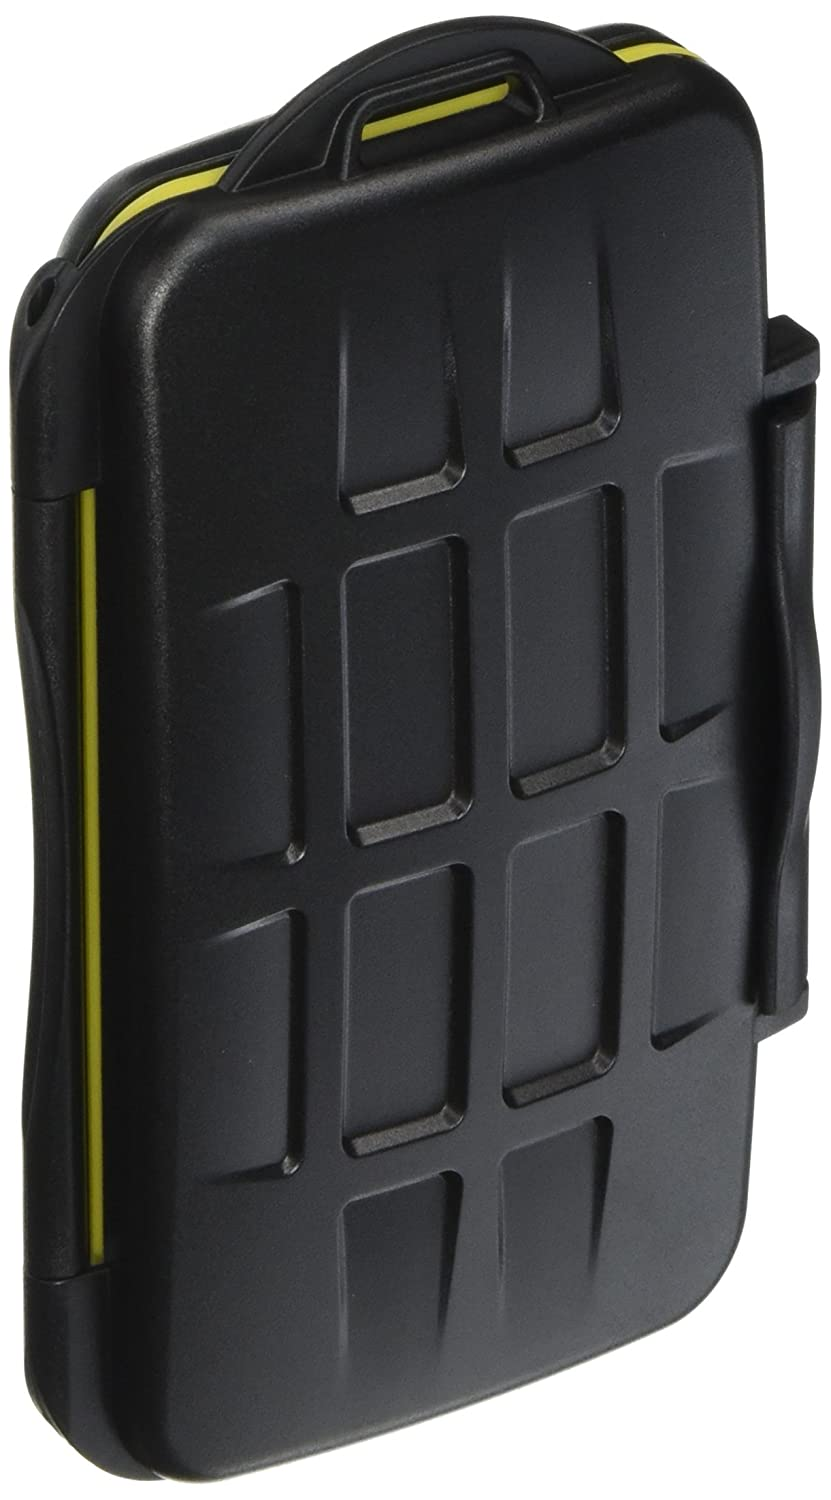 JJC MC-SD12 Water Resistant Holder Storage Memory Card Case fits 12 SD Cards JJC_MC-SD12